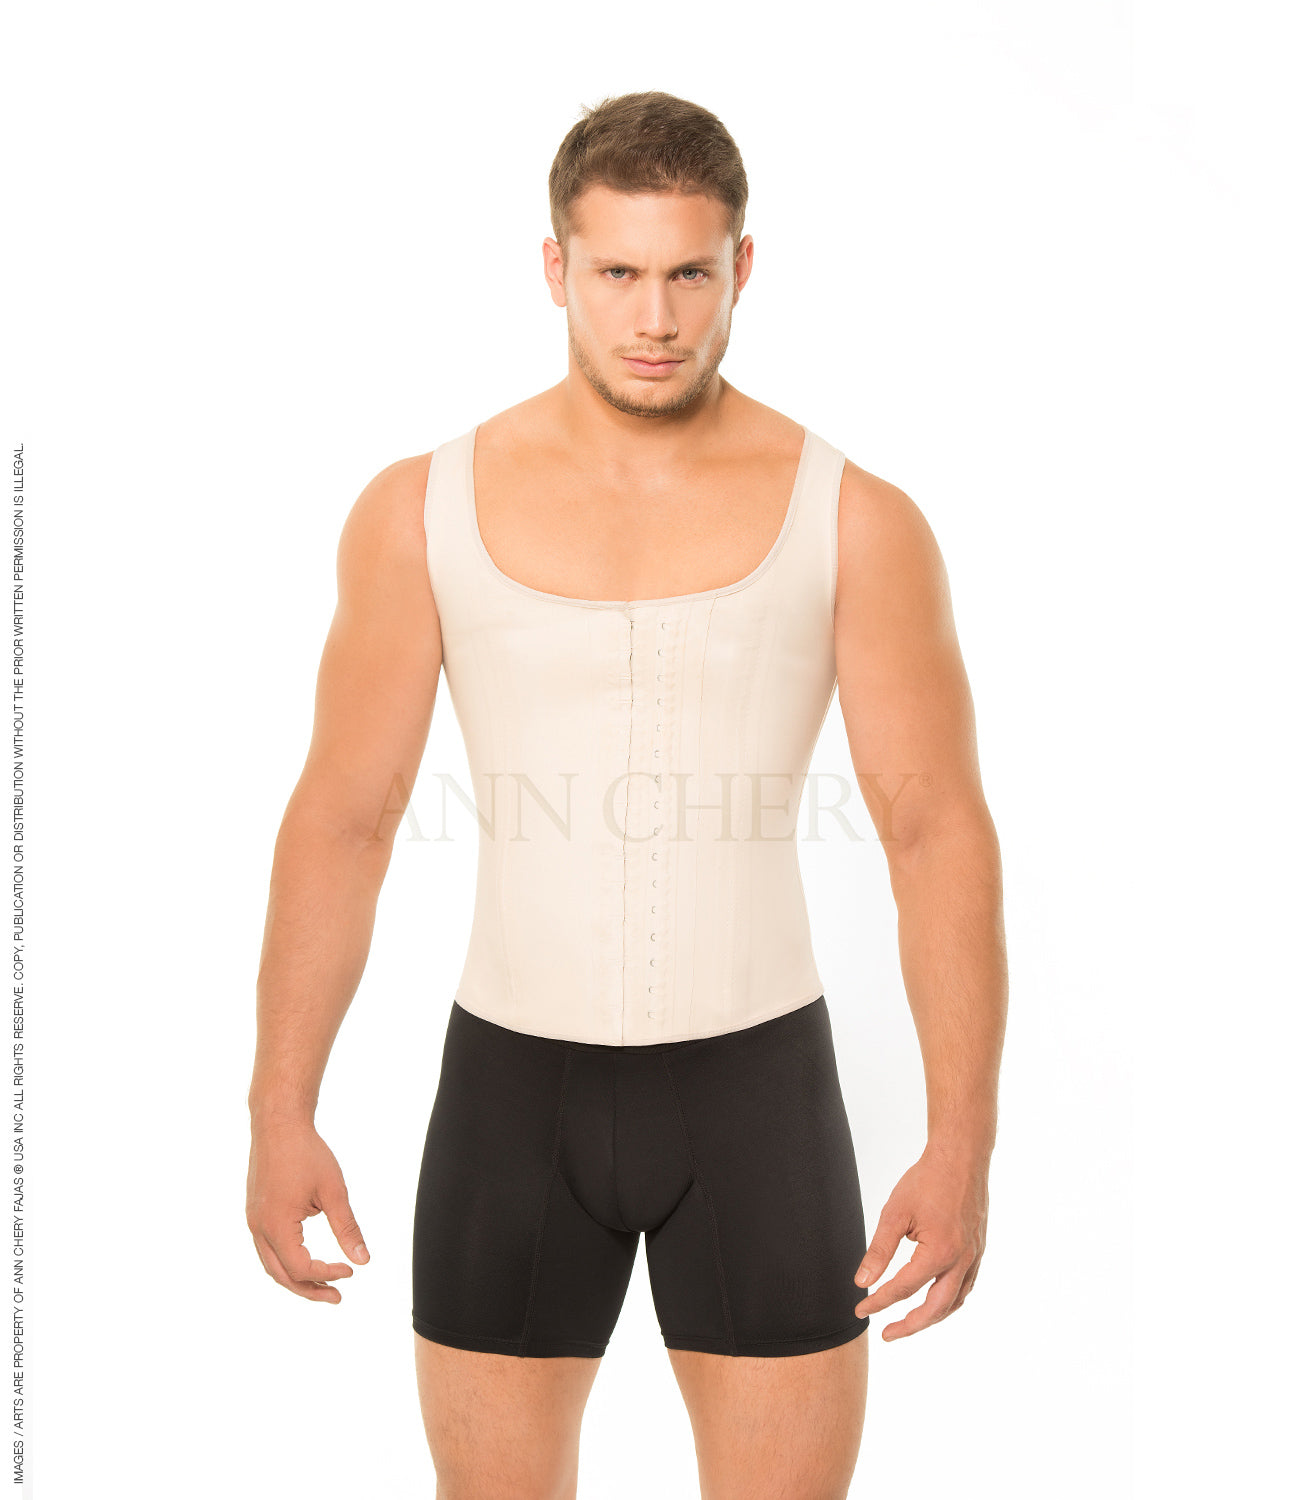 Ann Chery 2033 Chaleco Latex Fajas Para Hombre Men Girdle